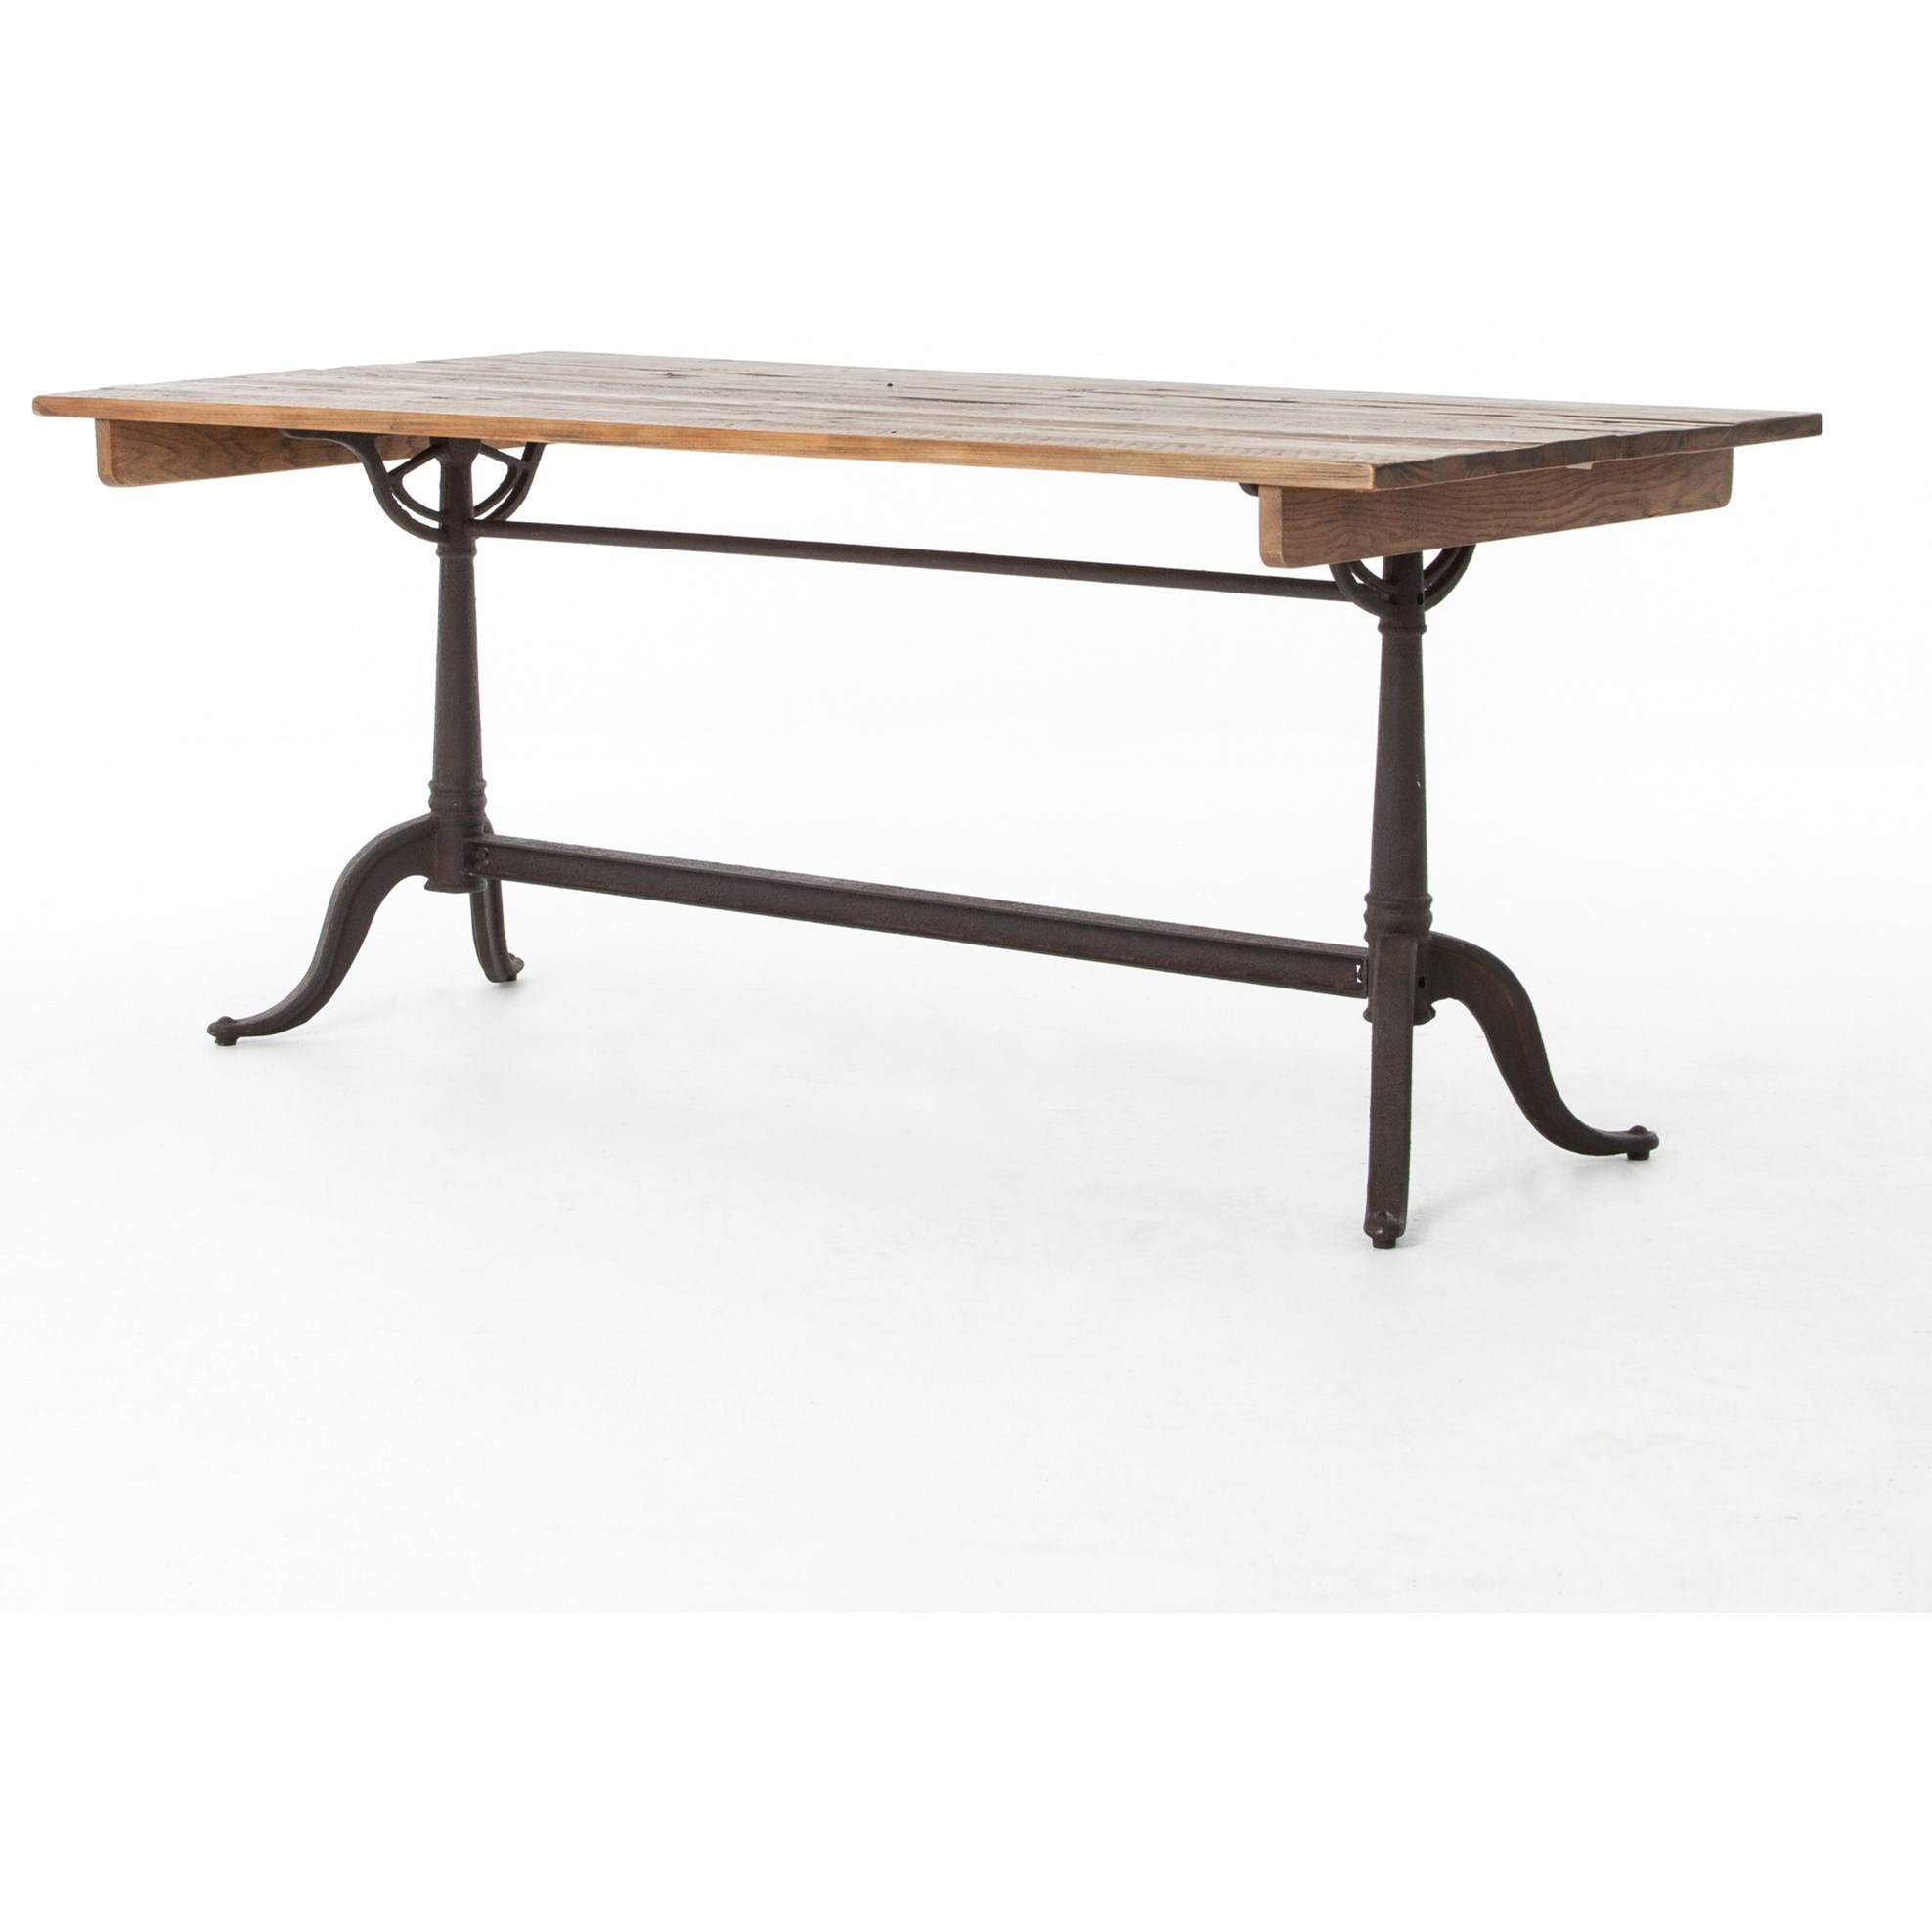 Four Hands Hughes Parisian Dining Table With Trestle Base